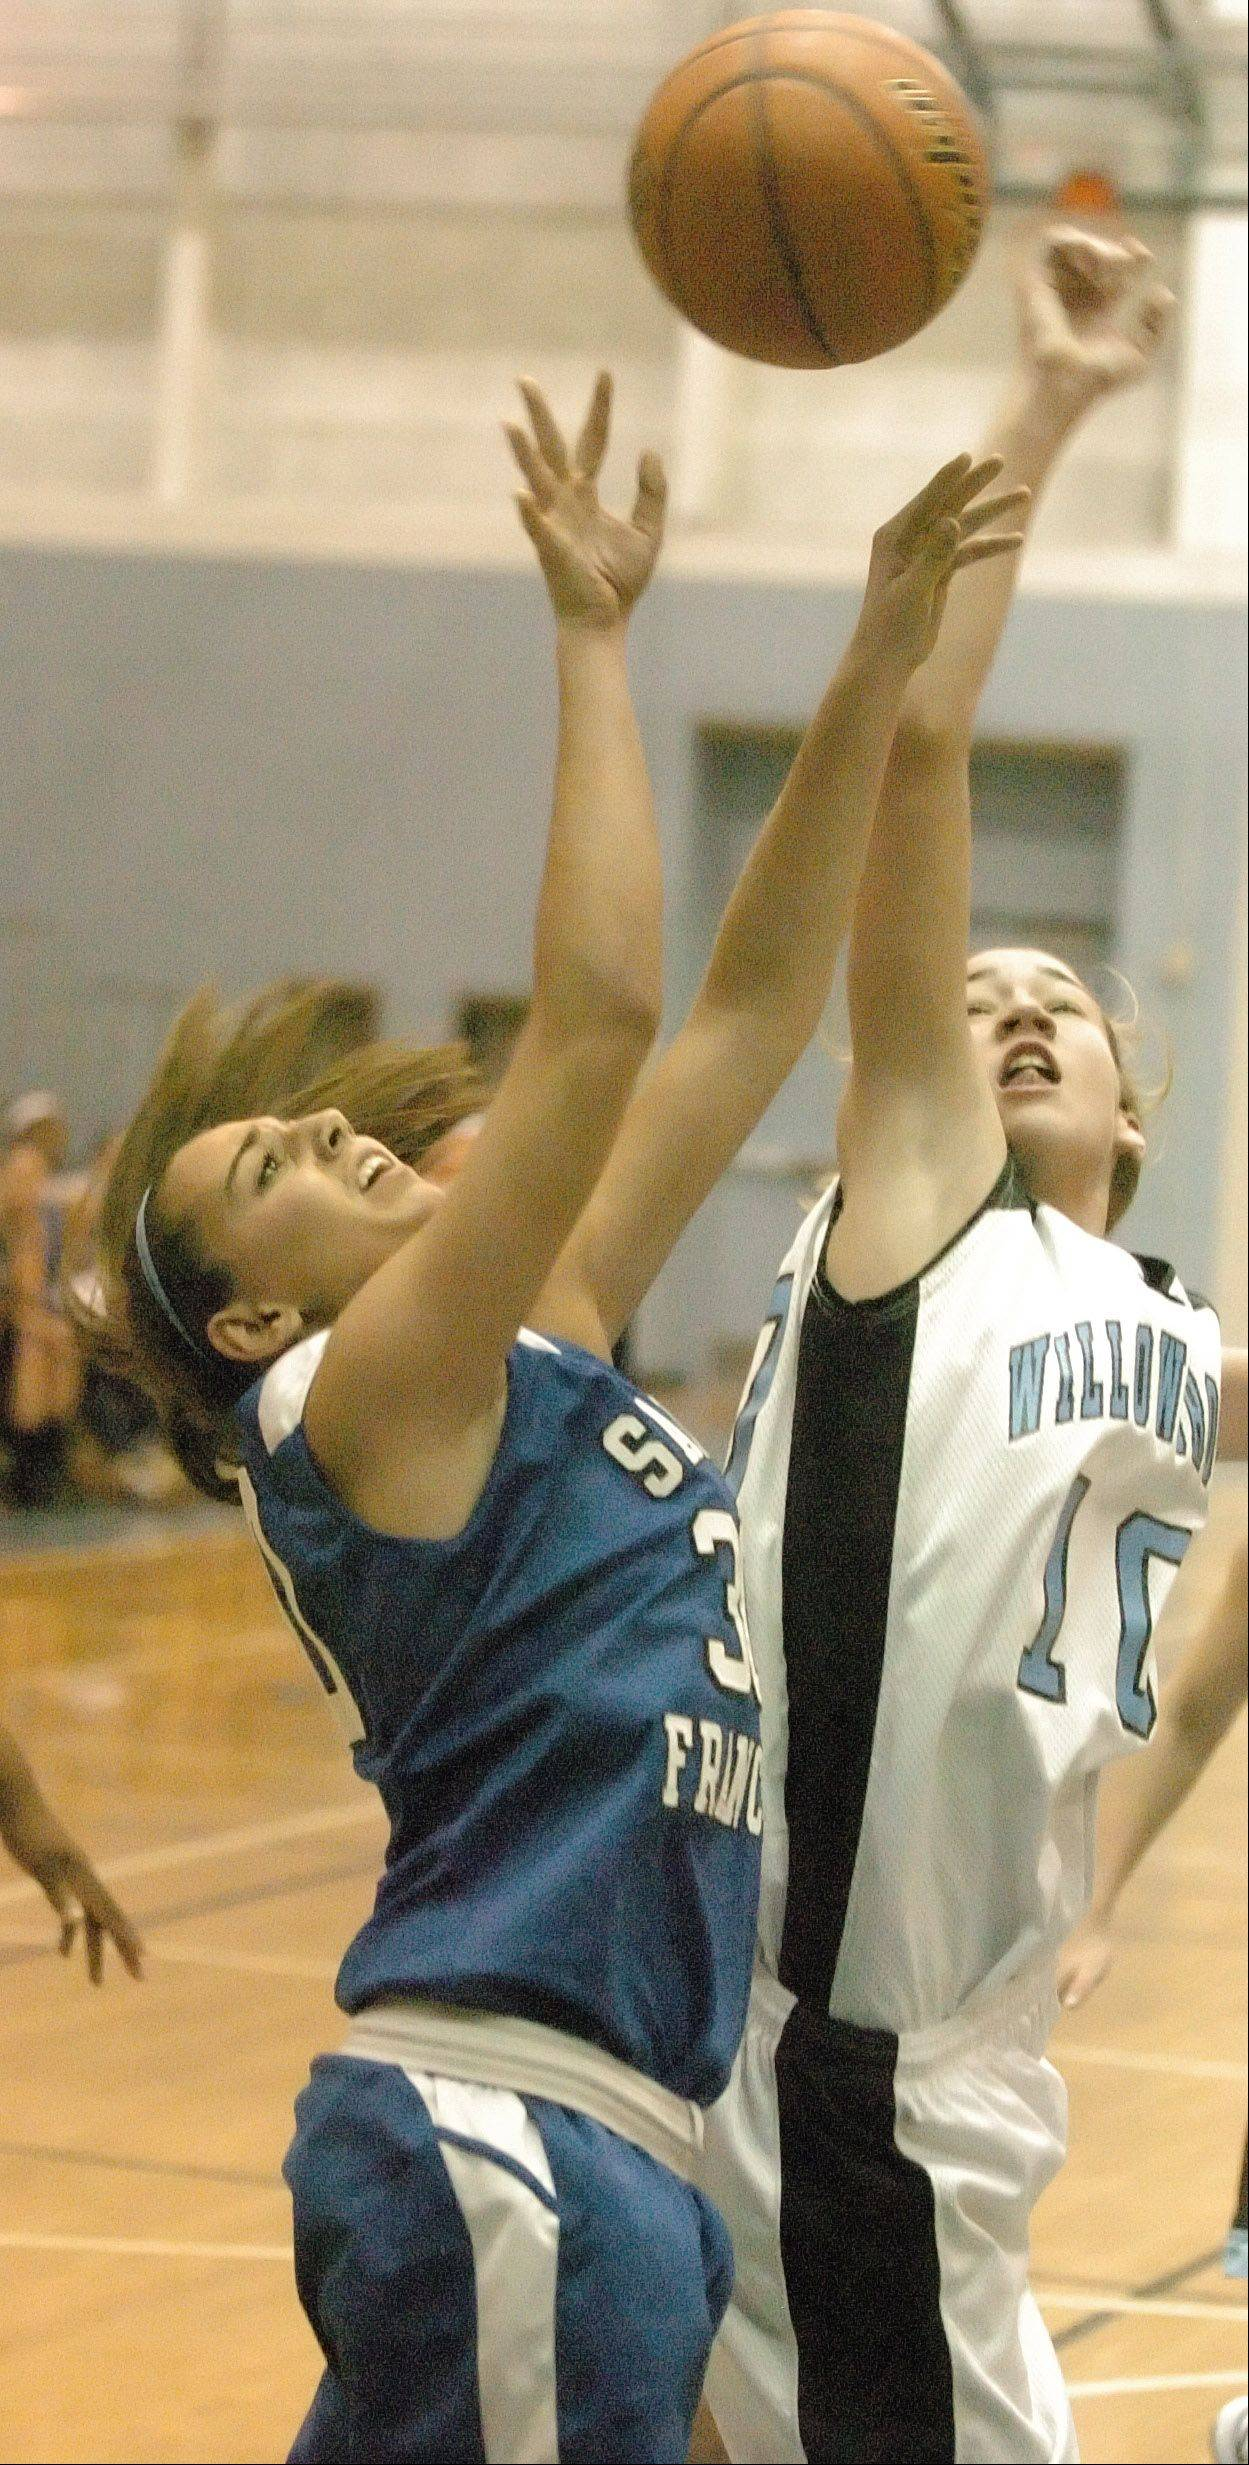 Aly Germanos of St. Francis and Molly Krawczykowski of Willowbrook fight for the ball. This took place during the St. Francis at Willowbrook 19th annual Willowbrook Warriors Thanksgiving Invite Thursday.